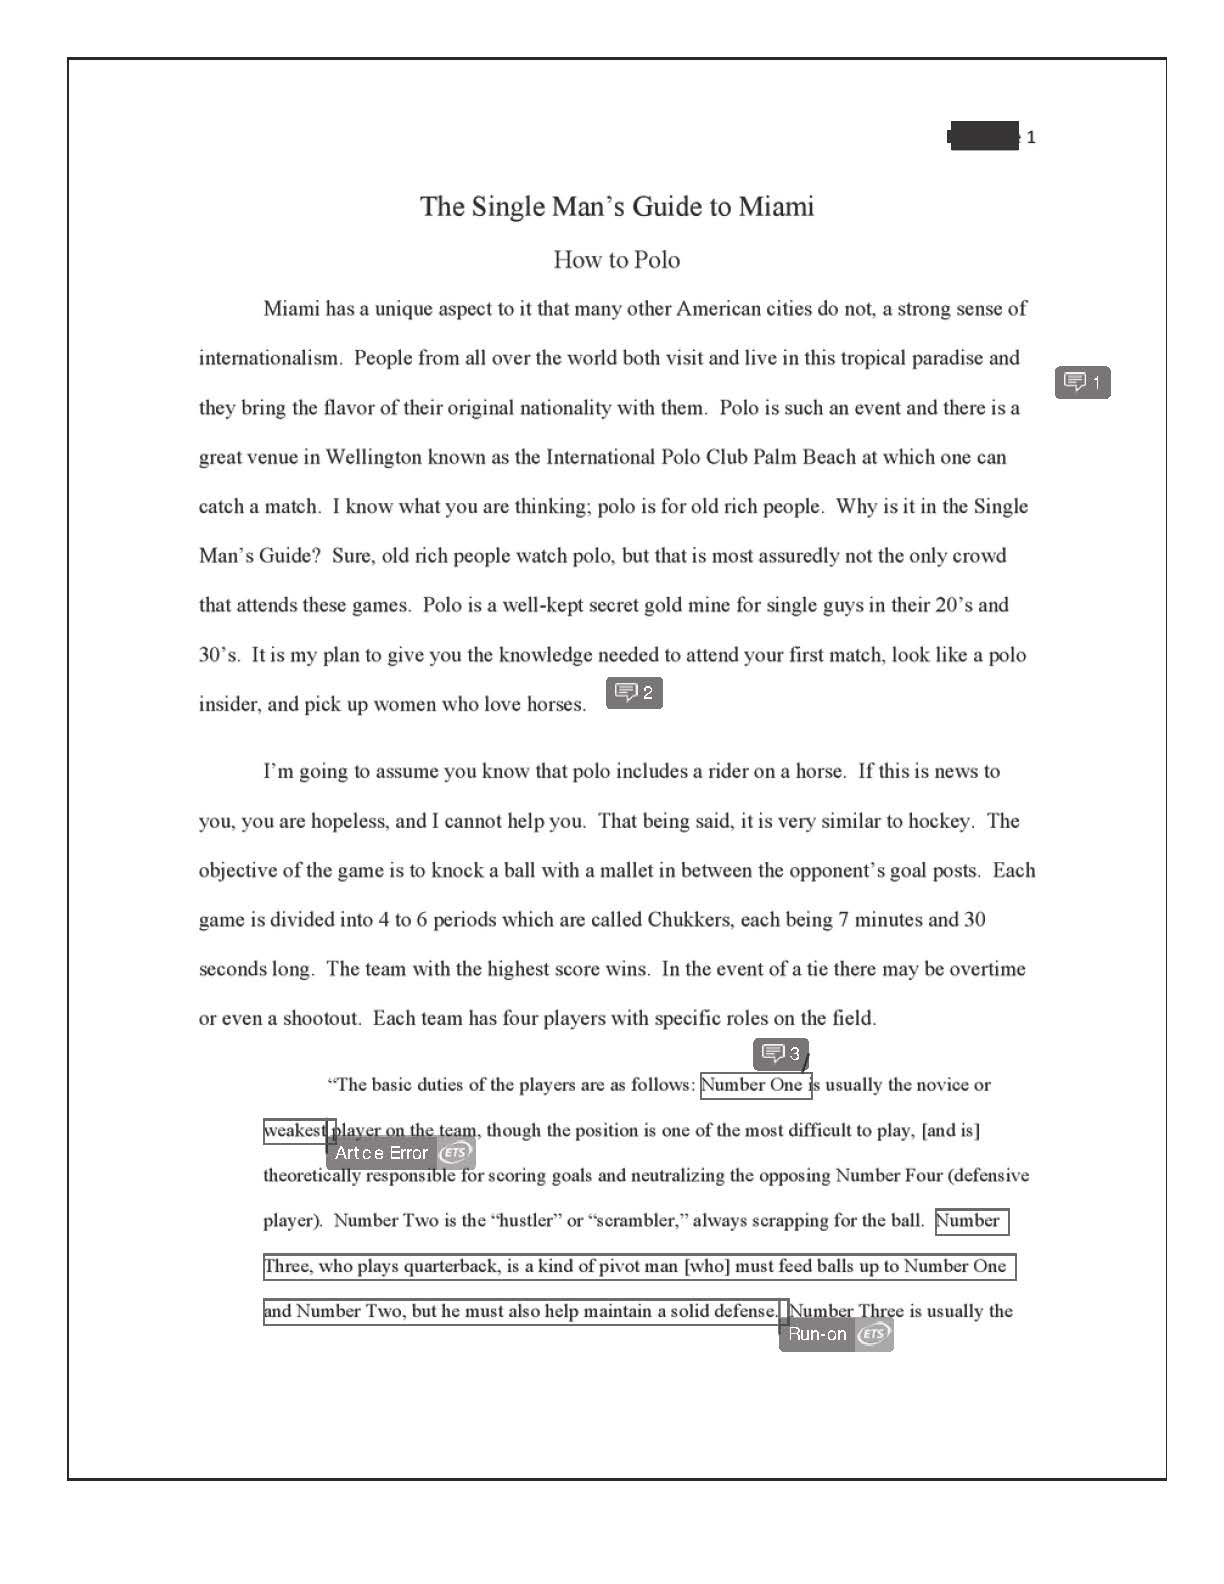 007 Informative Essay Kinds Of Writing Types Essays The Center In Hindi Final How To Polo Redacted P Pdf Task Slideshare Ppt Withs Wikipedia Dreaded Graphic Organizer Middle School Rubric 6th Grade Topics Full